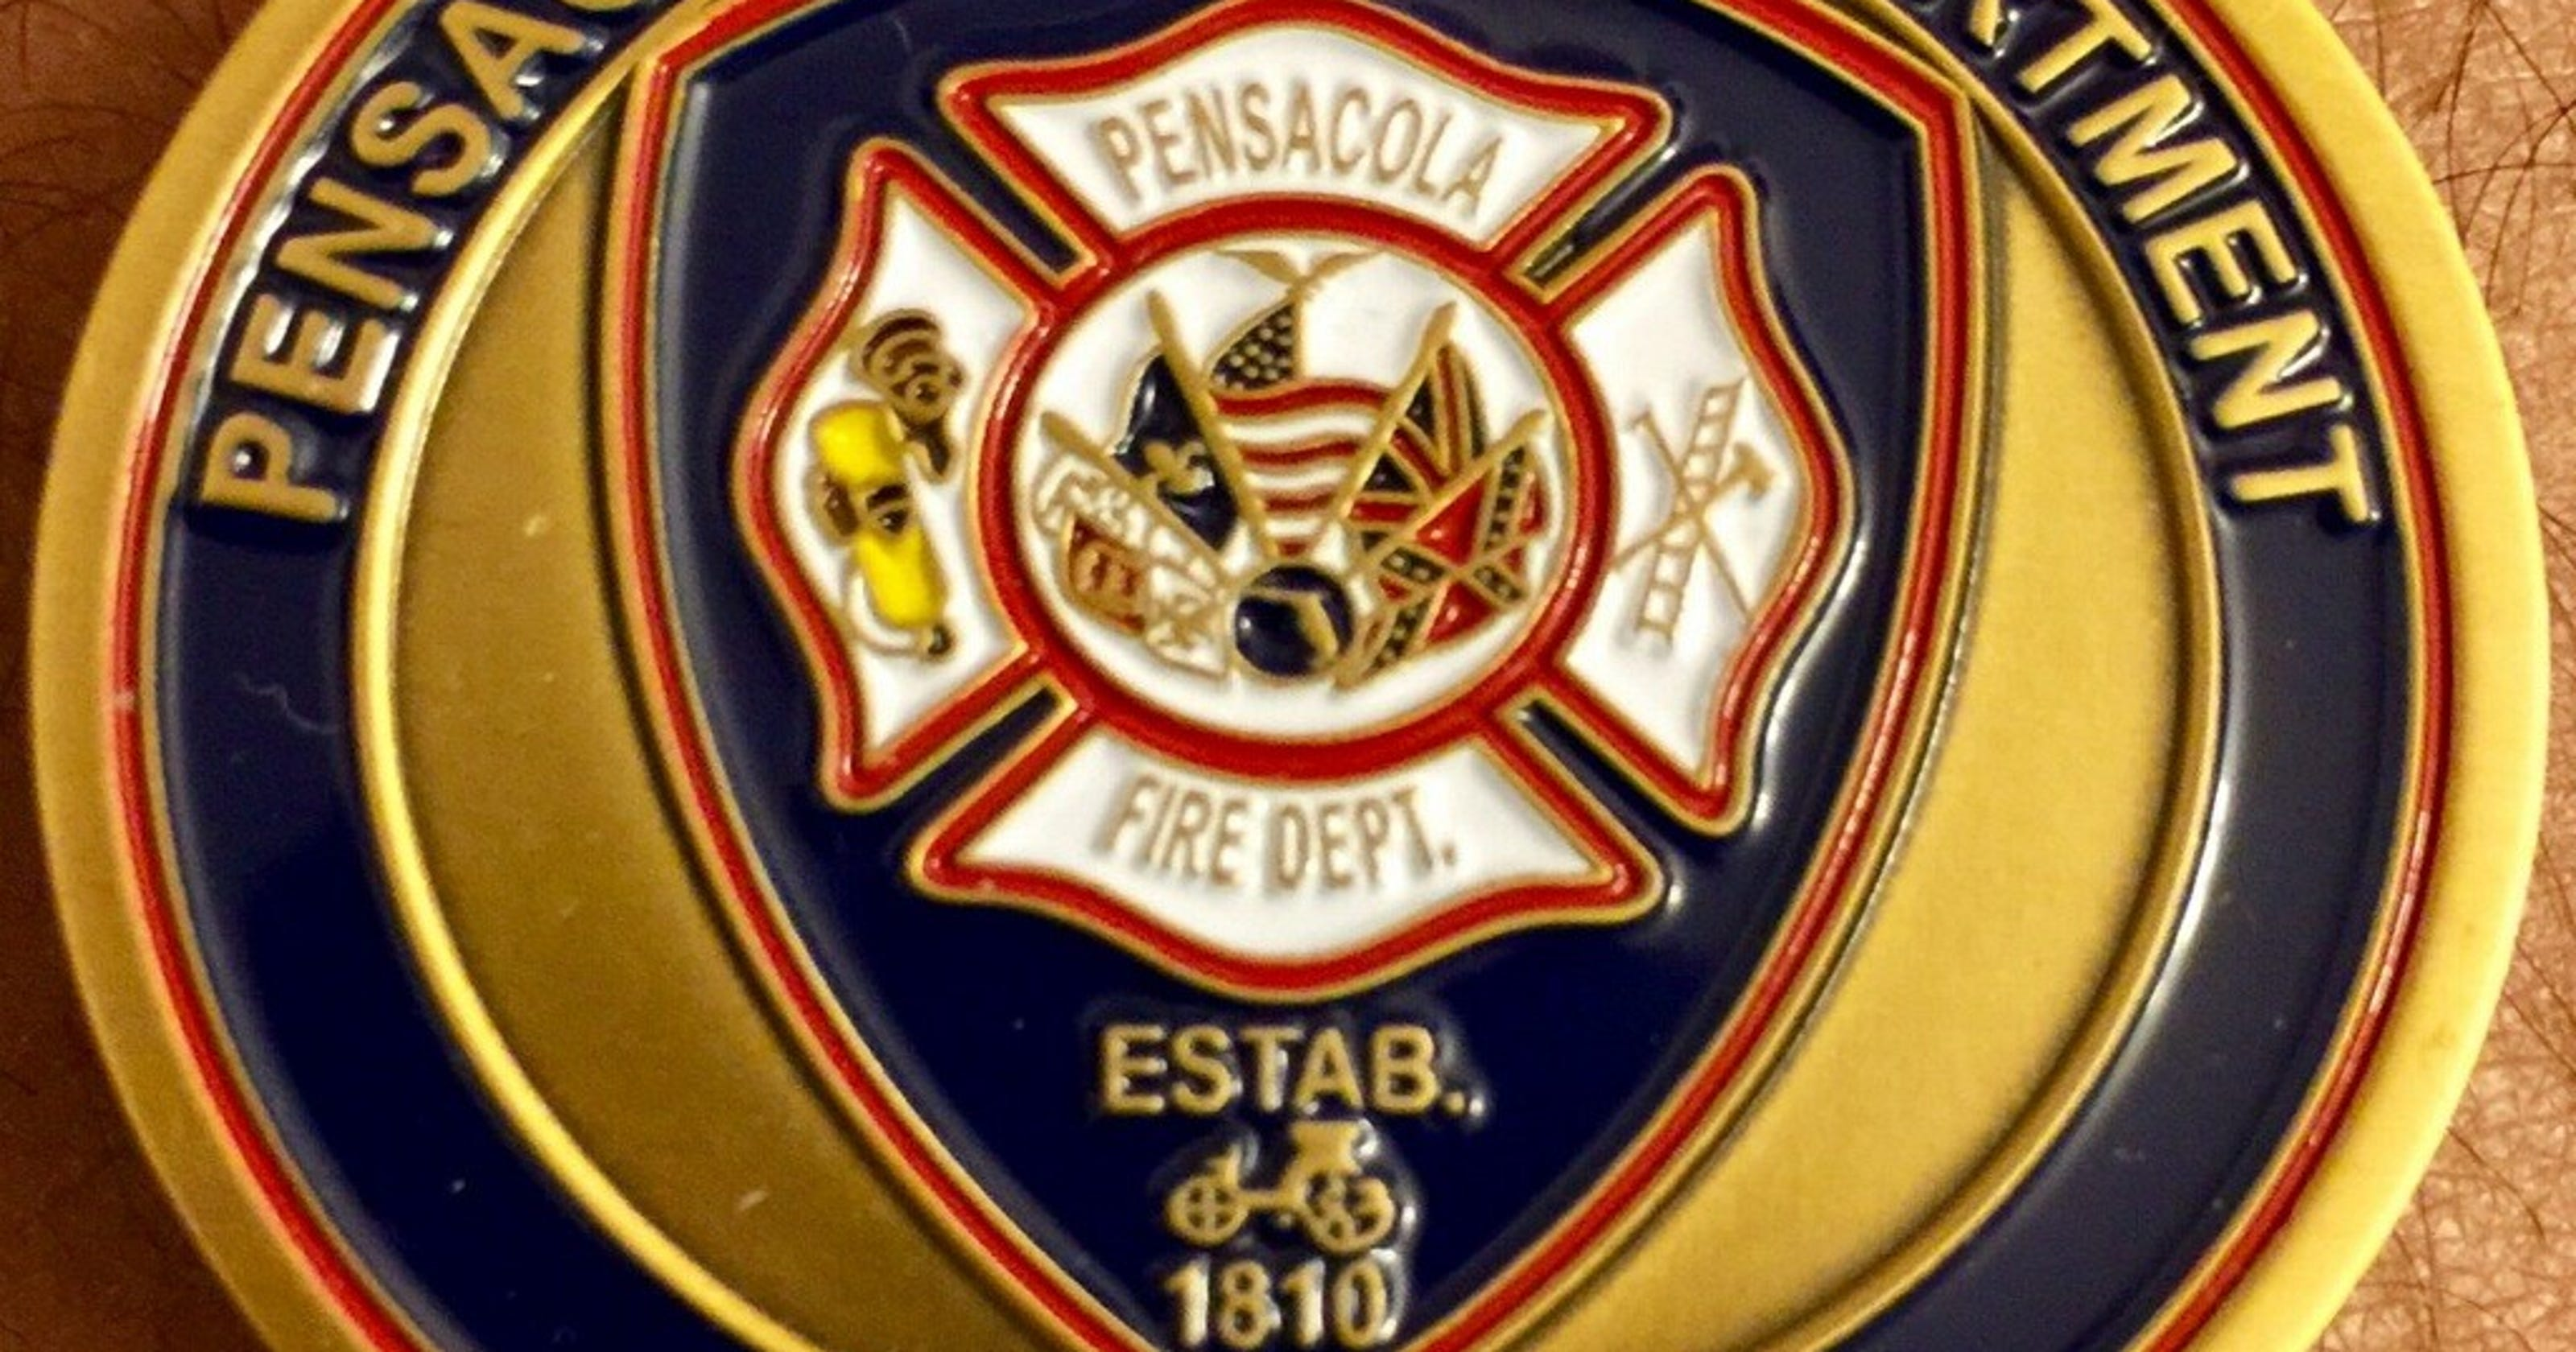 Coin causes controversy at Pensacola Fire Department